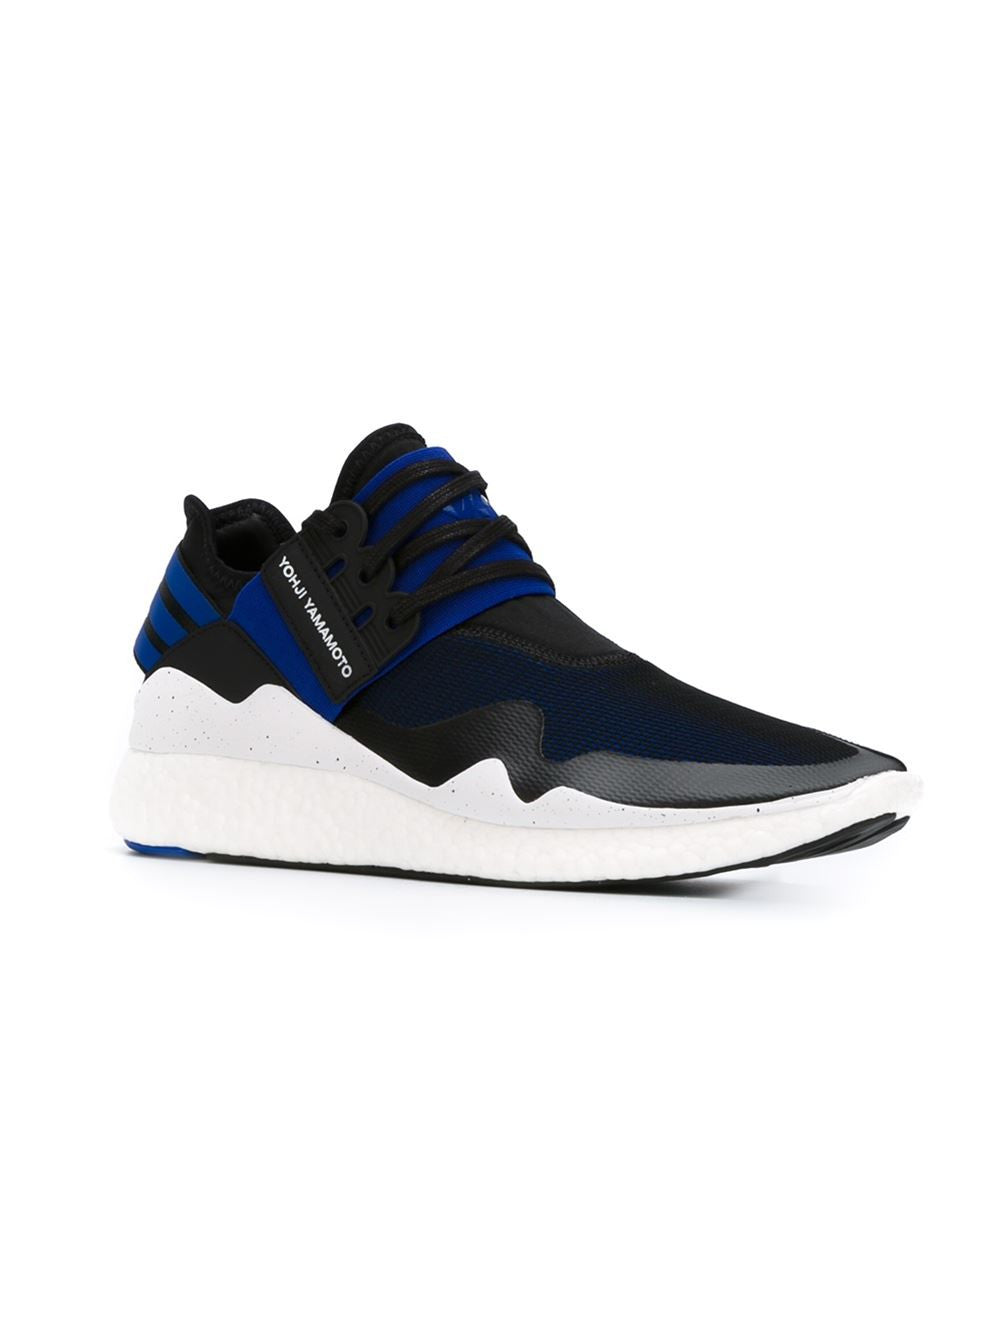 Retro Boost Trainer | AQ5494 RETRO BOOST